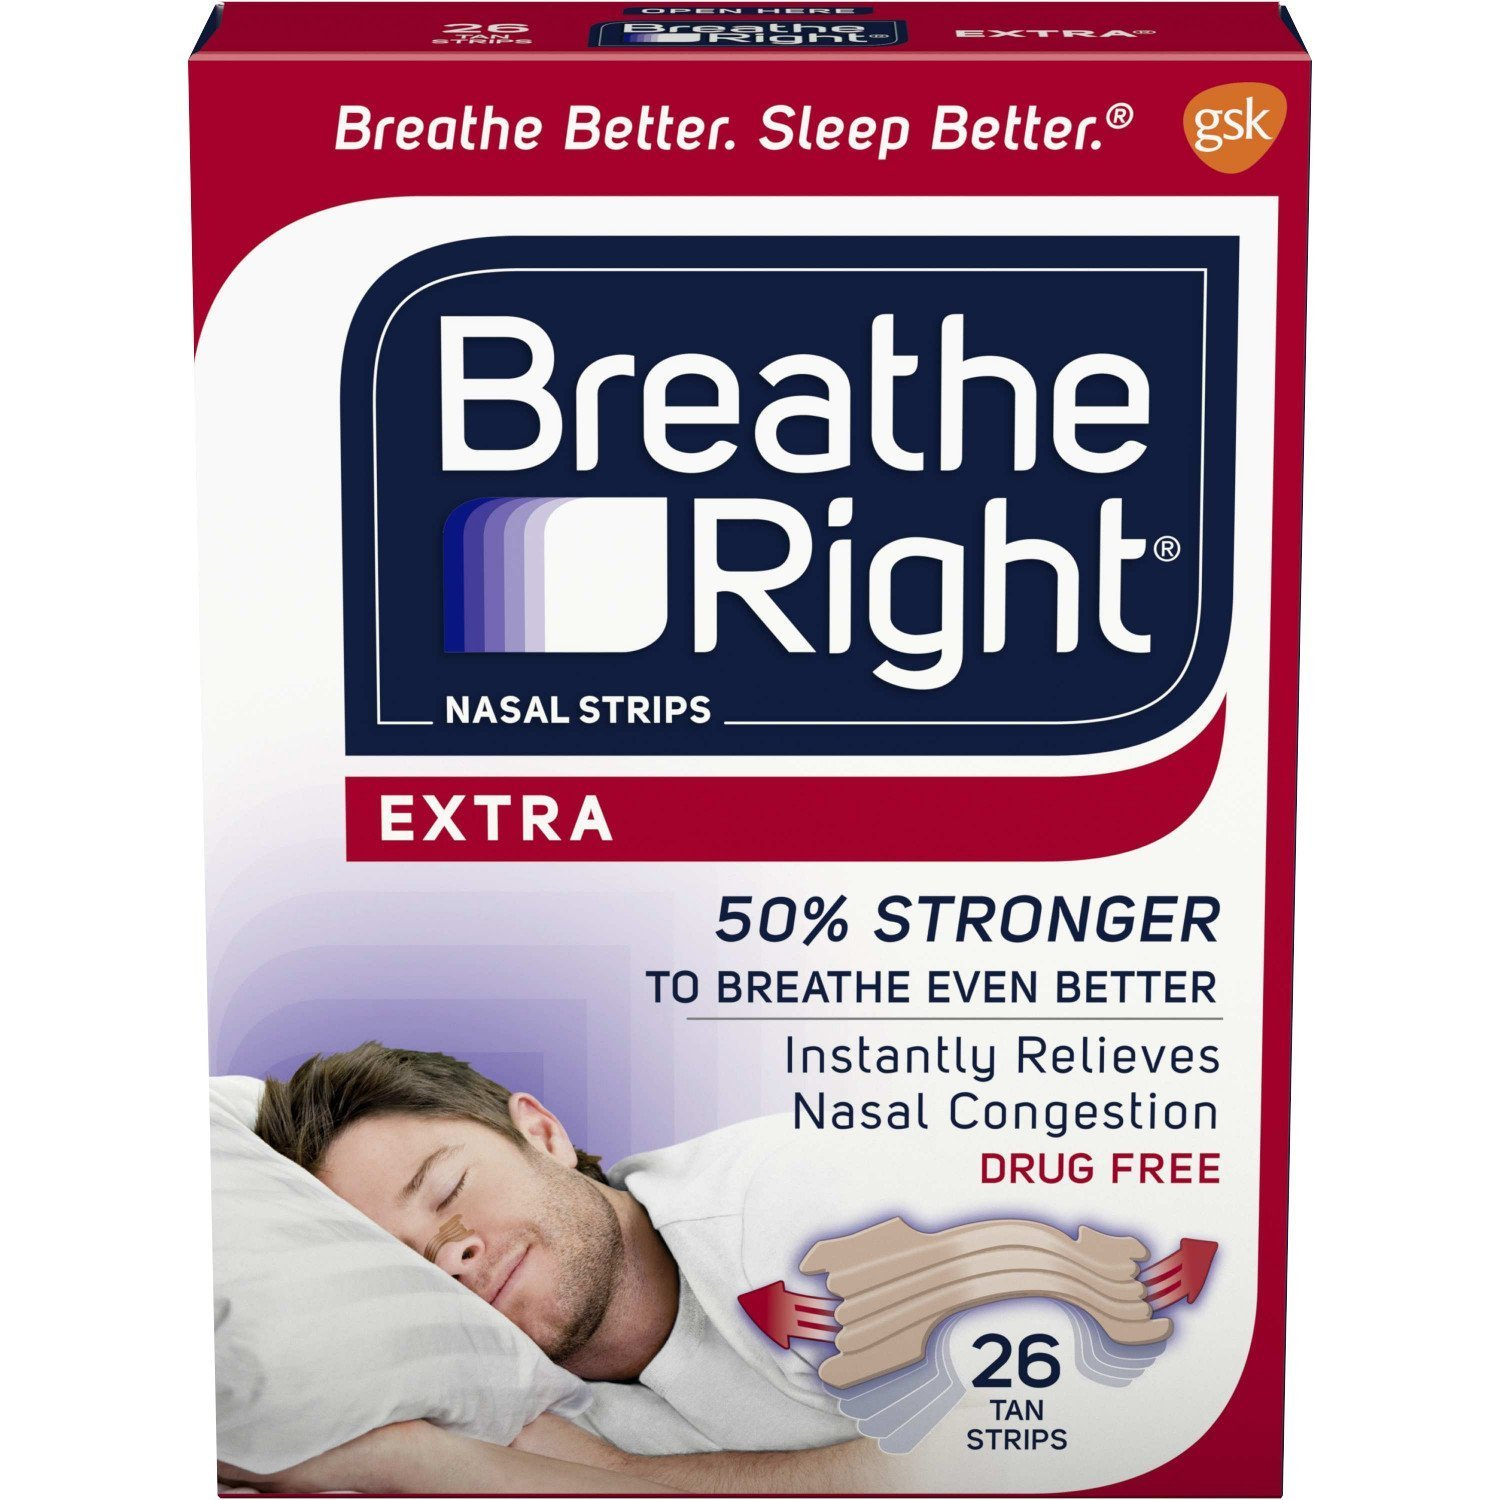 Breathe Right Extra Strength Clear Drug-Free Nasal Strips for Congestion Relief, 26 count - Pack of 5